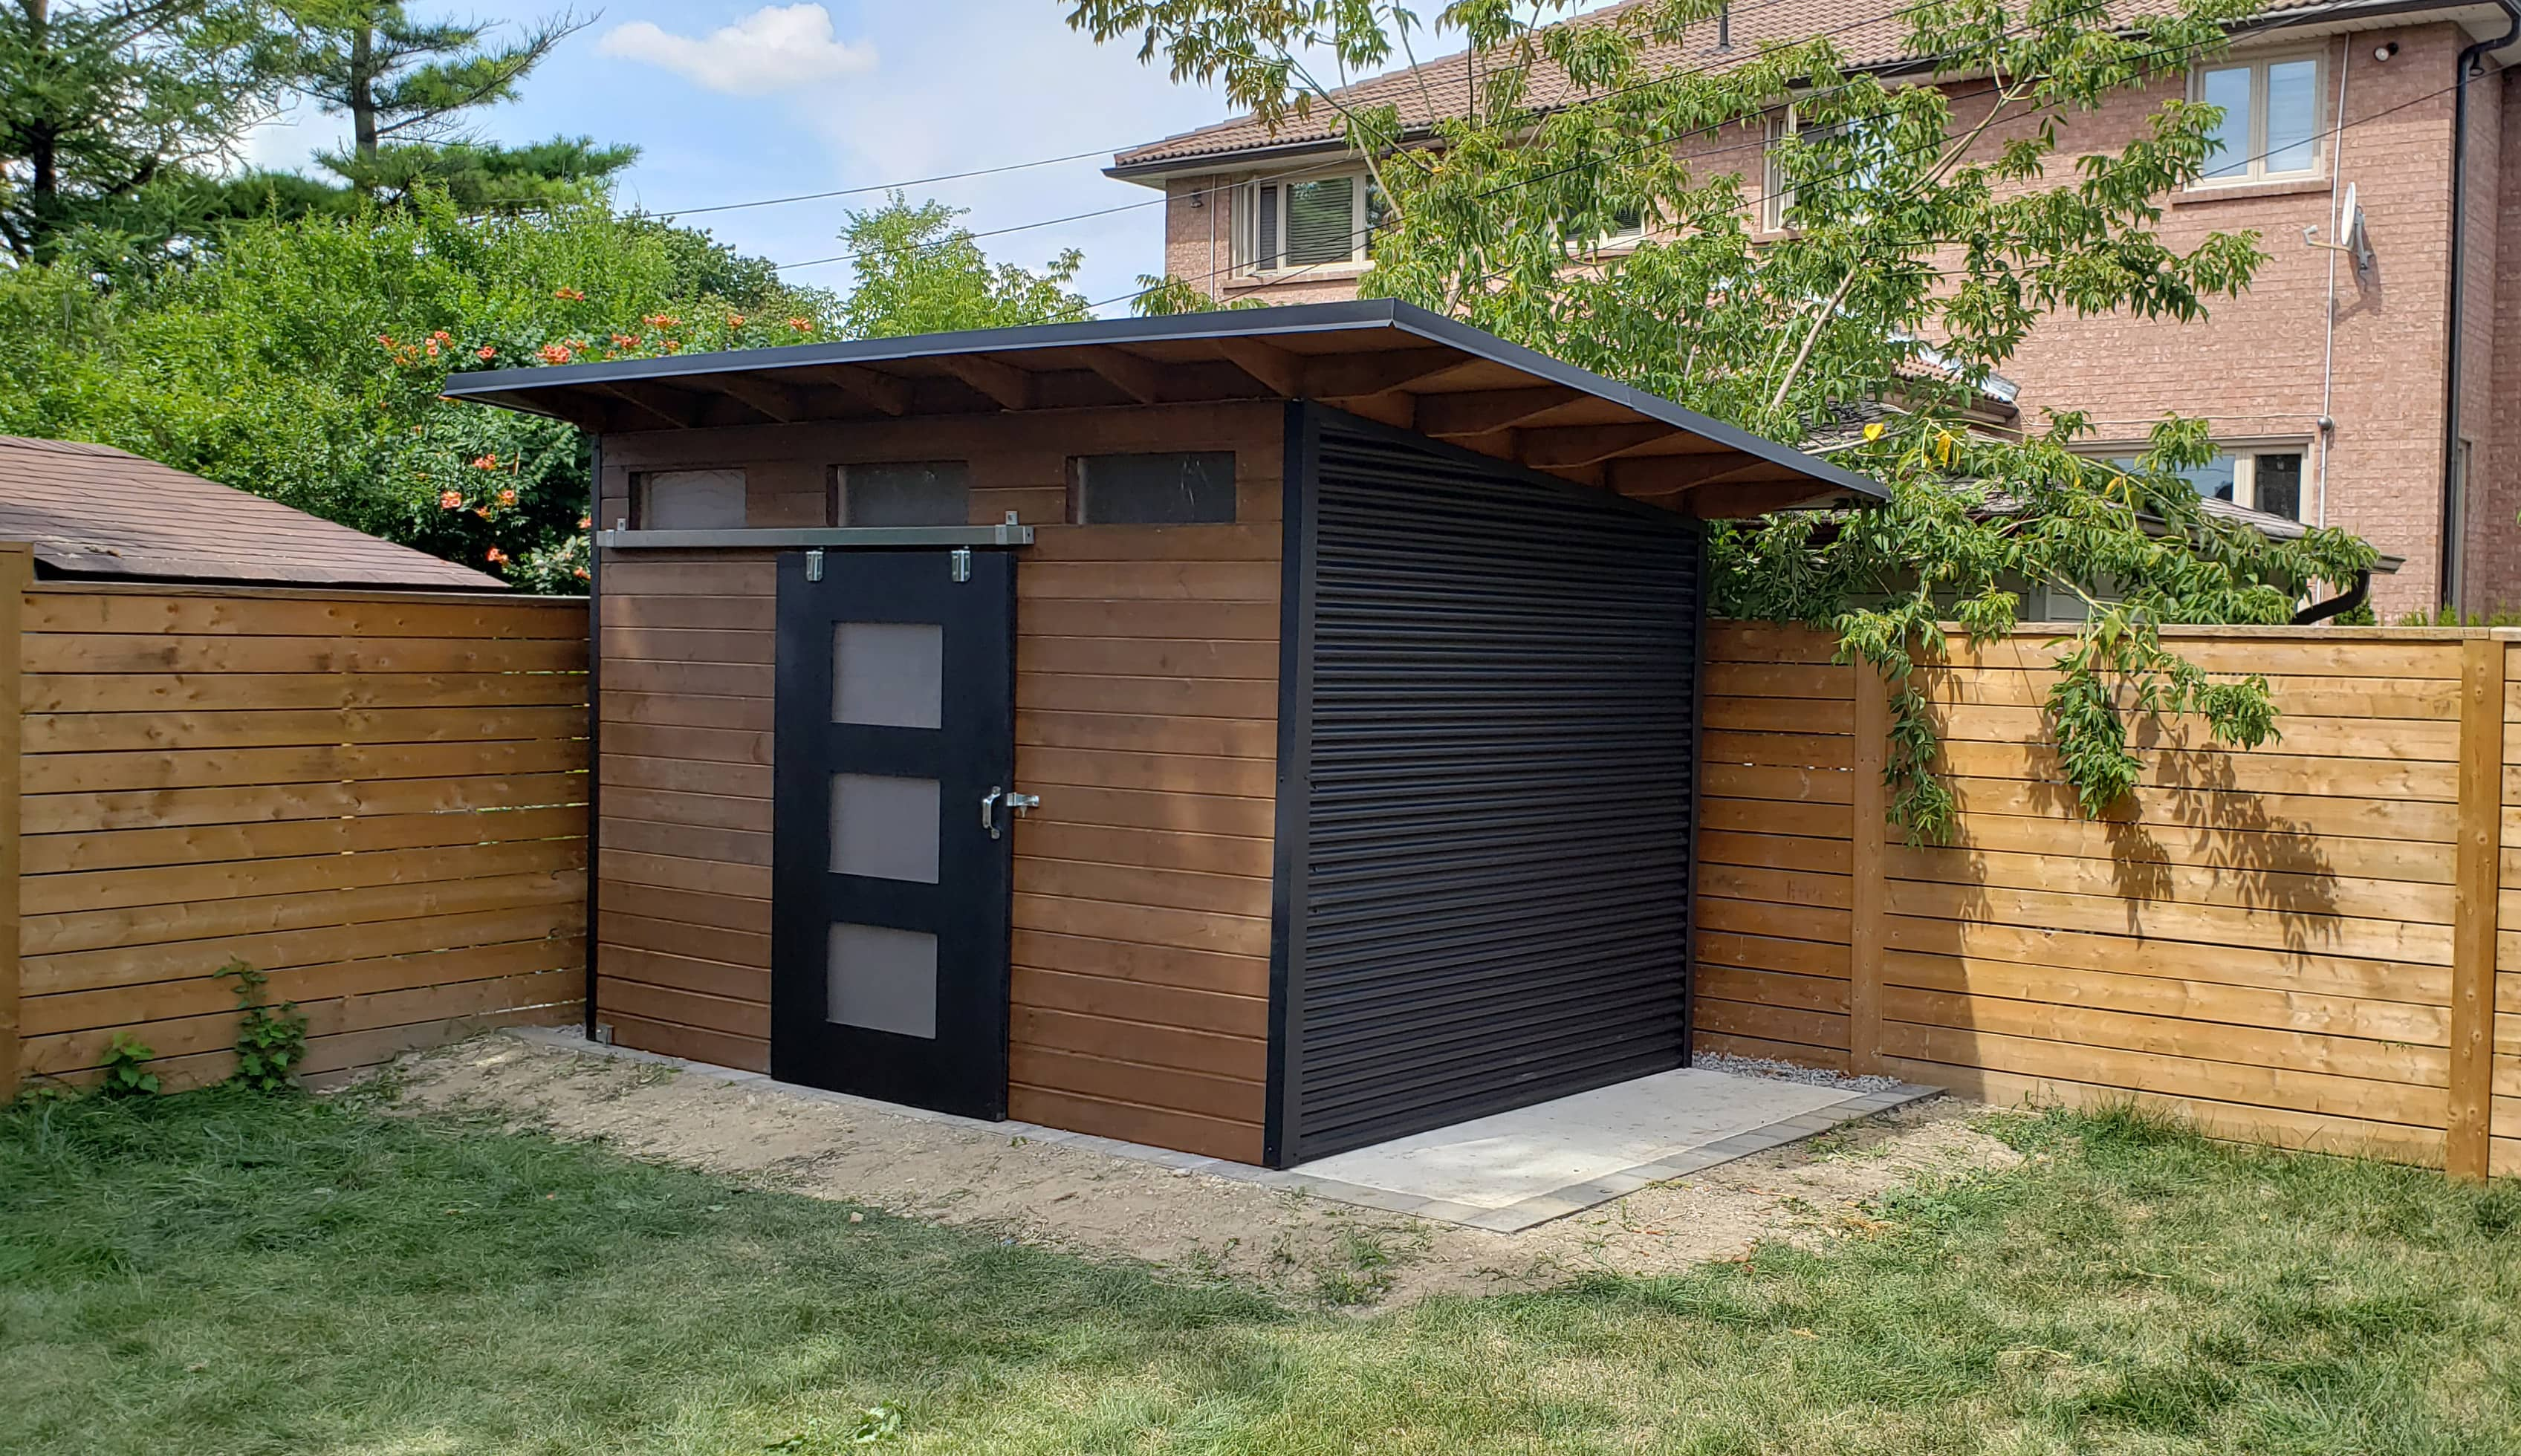 12' x 8' Advanced Shed with Muskoka Brown Stain and Jet Black Steel